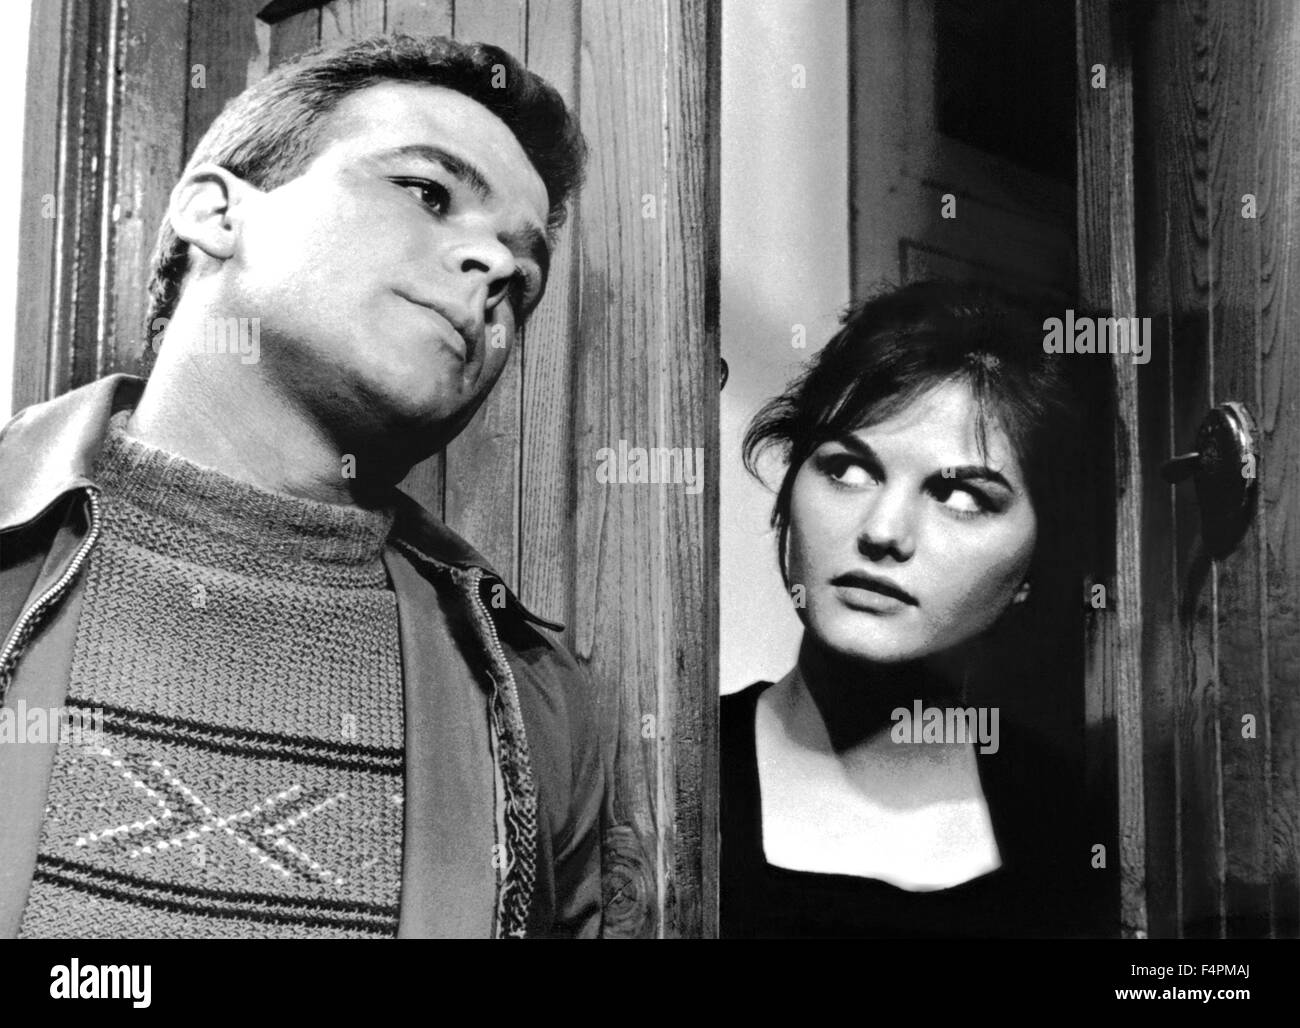 Renato Salvatori and Claudia Cardinale / Big Deal on Madonna Street / 1958  directed by Mario Monicelli [Lux Film]